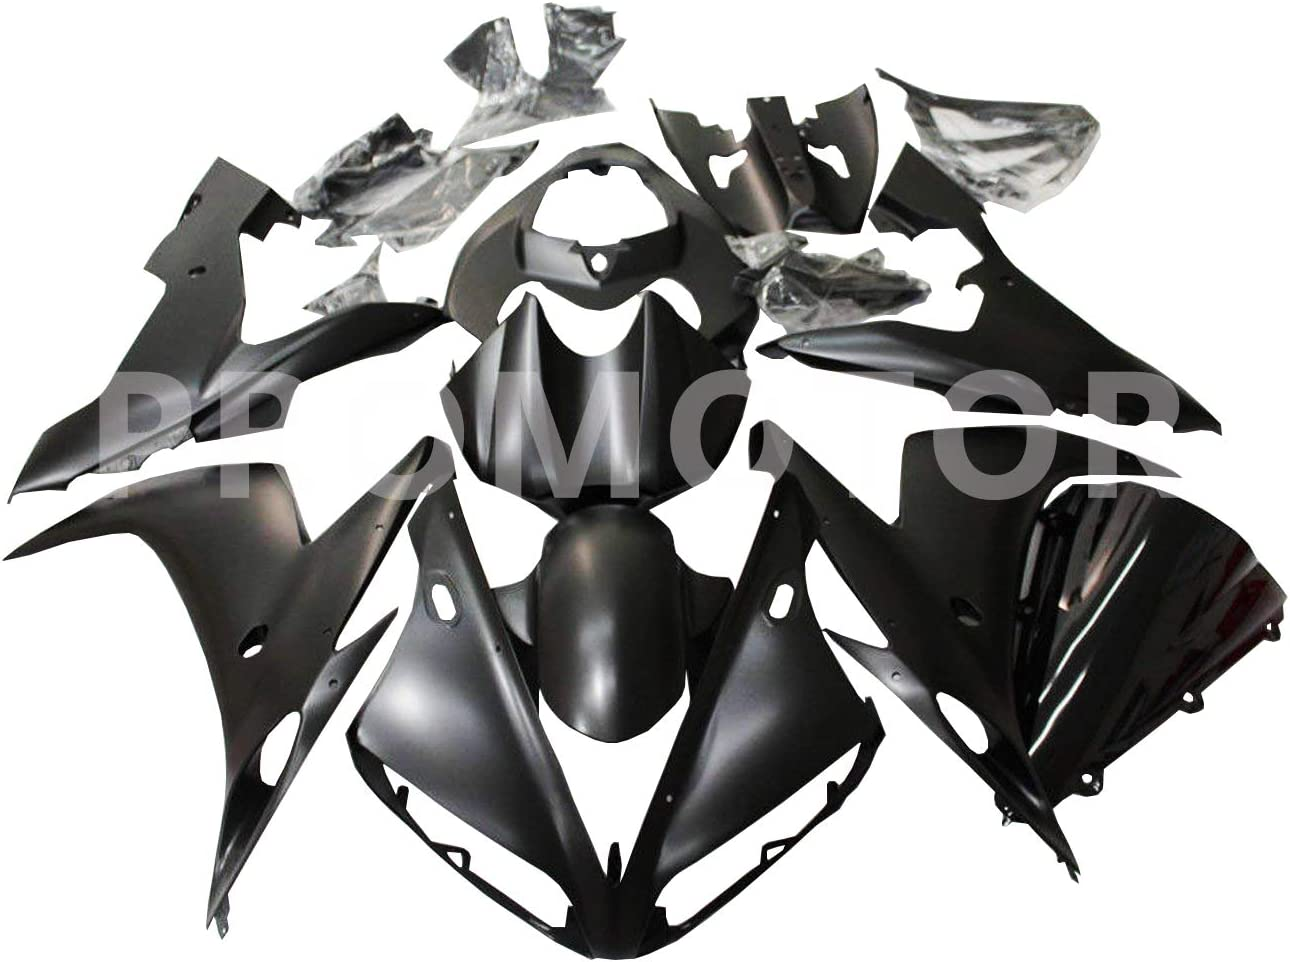 Pieces//kit: 20 ZXMOTO Y1005RED Motorcycle Bodywork Fairing Kit for Yamaha YZF R1 2004-2006 Red